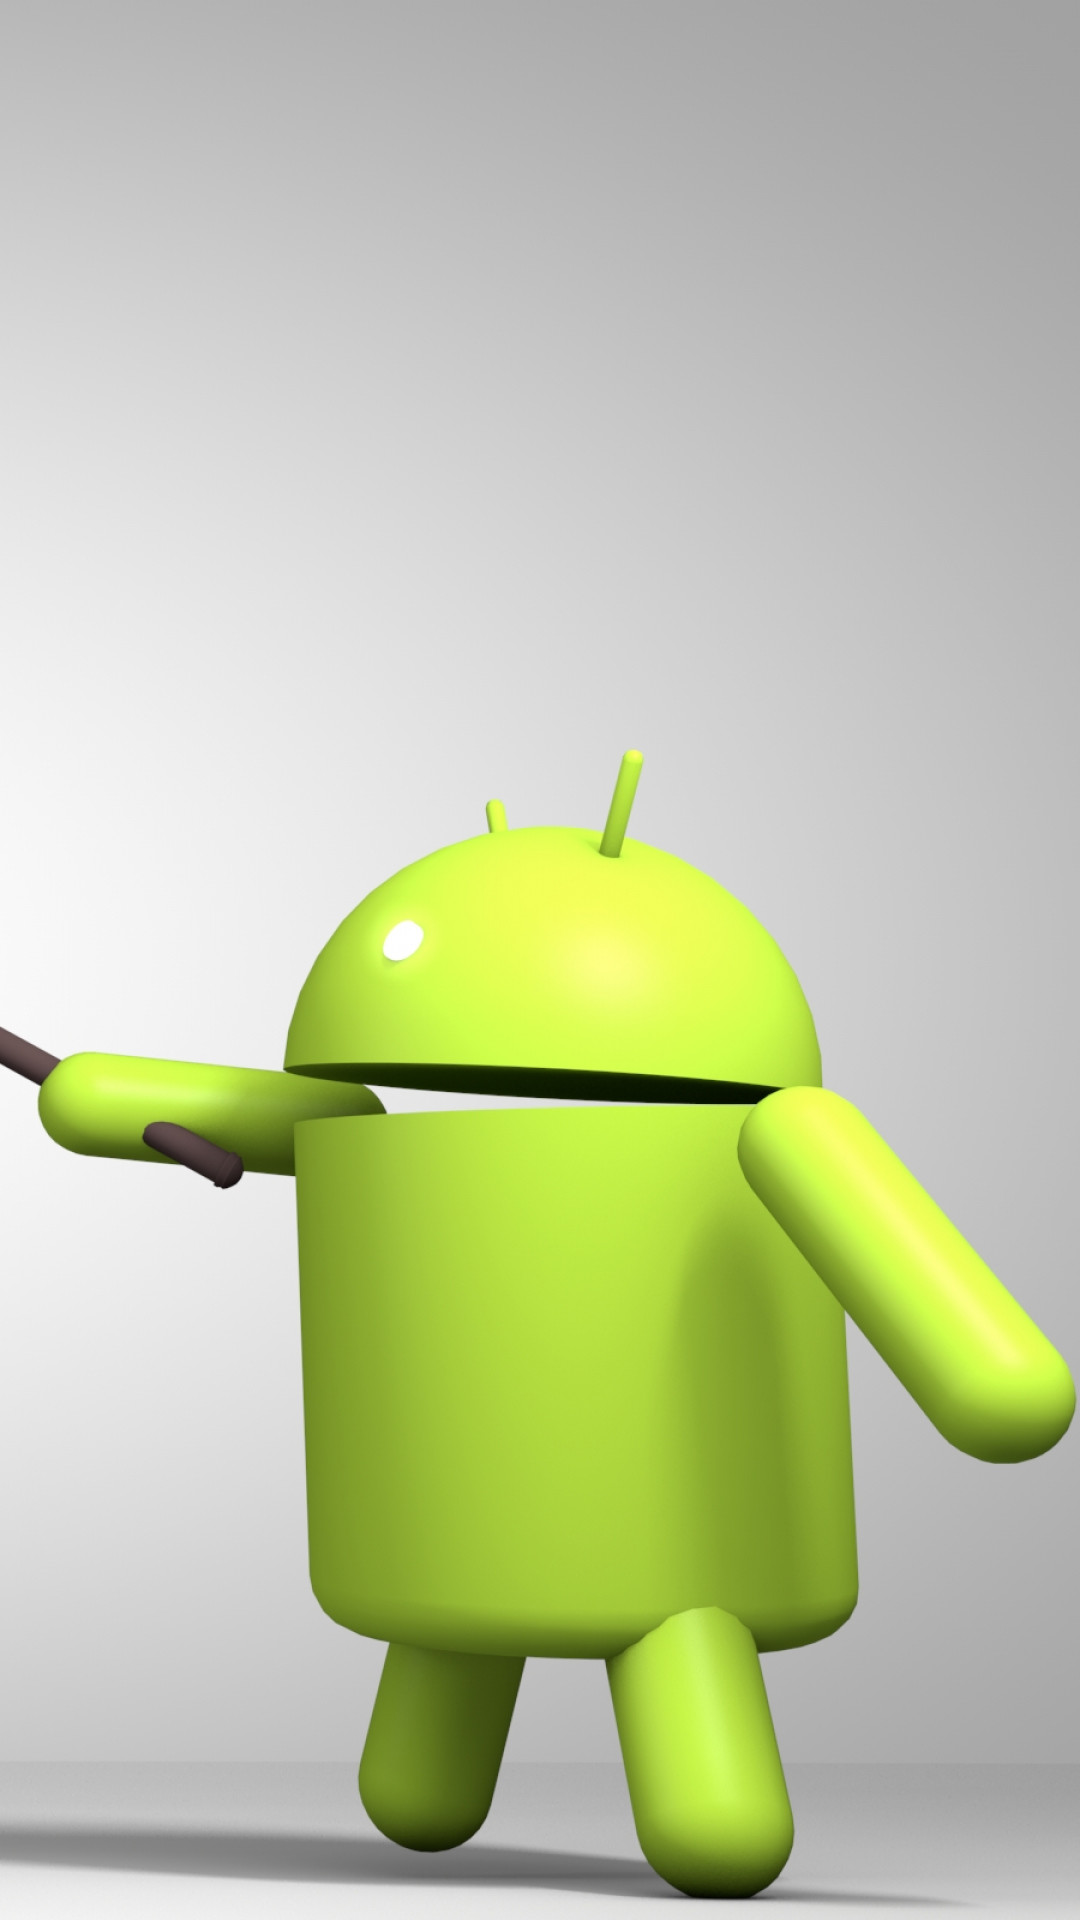 android apple wallpaper 71 images